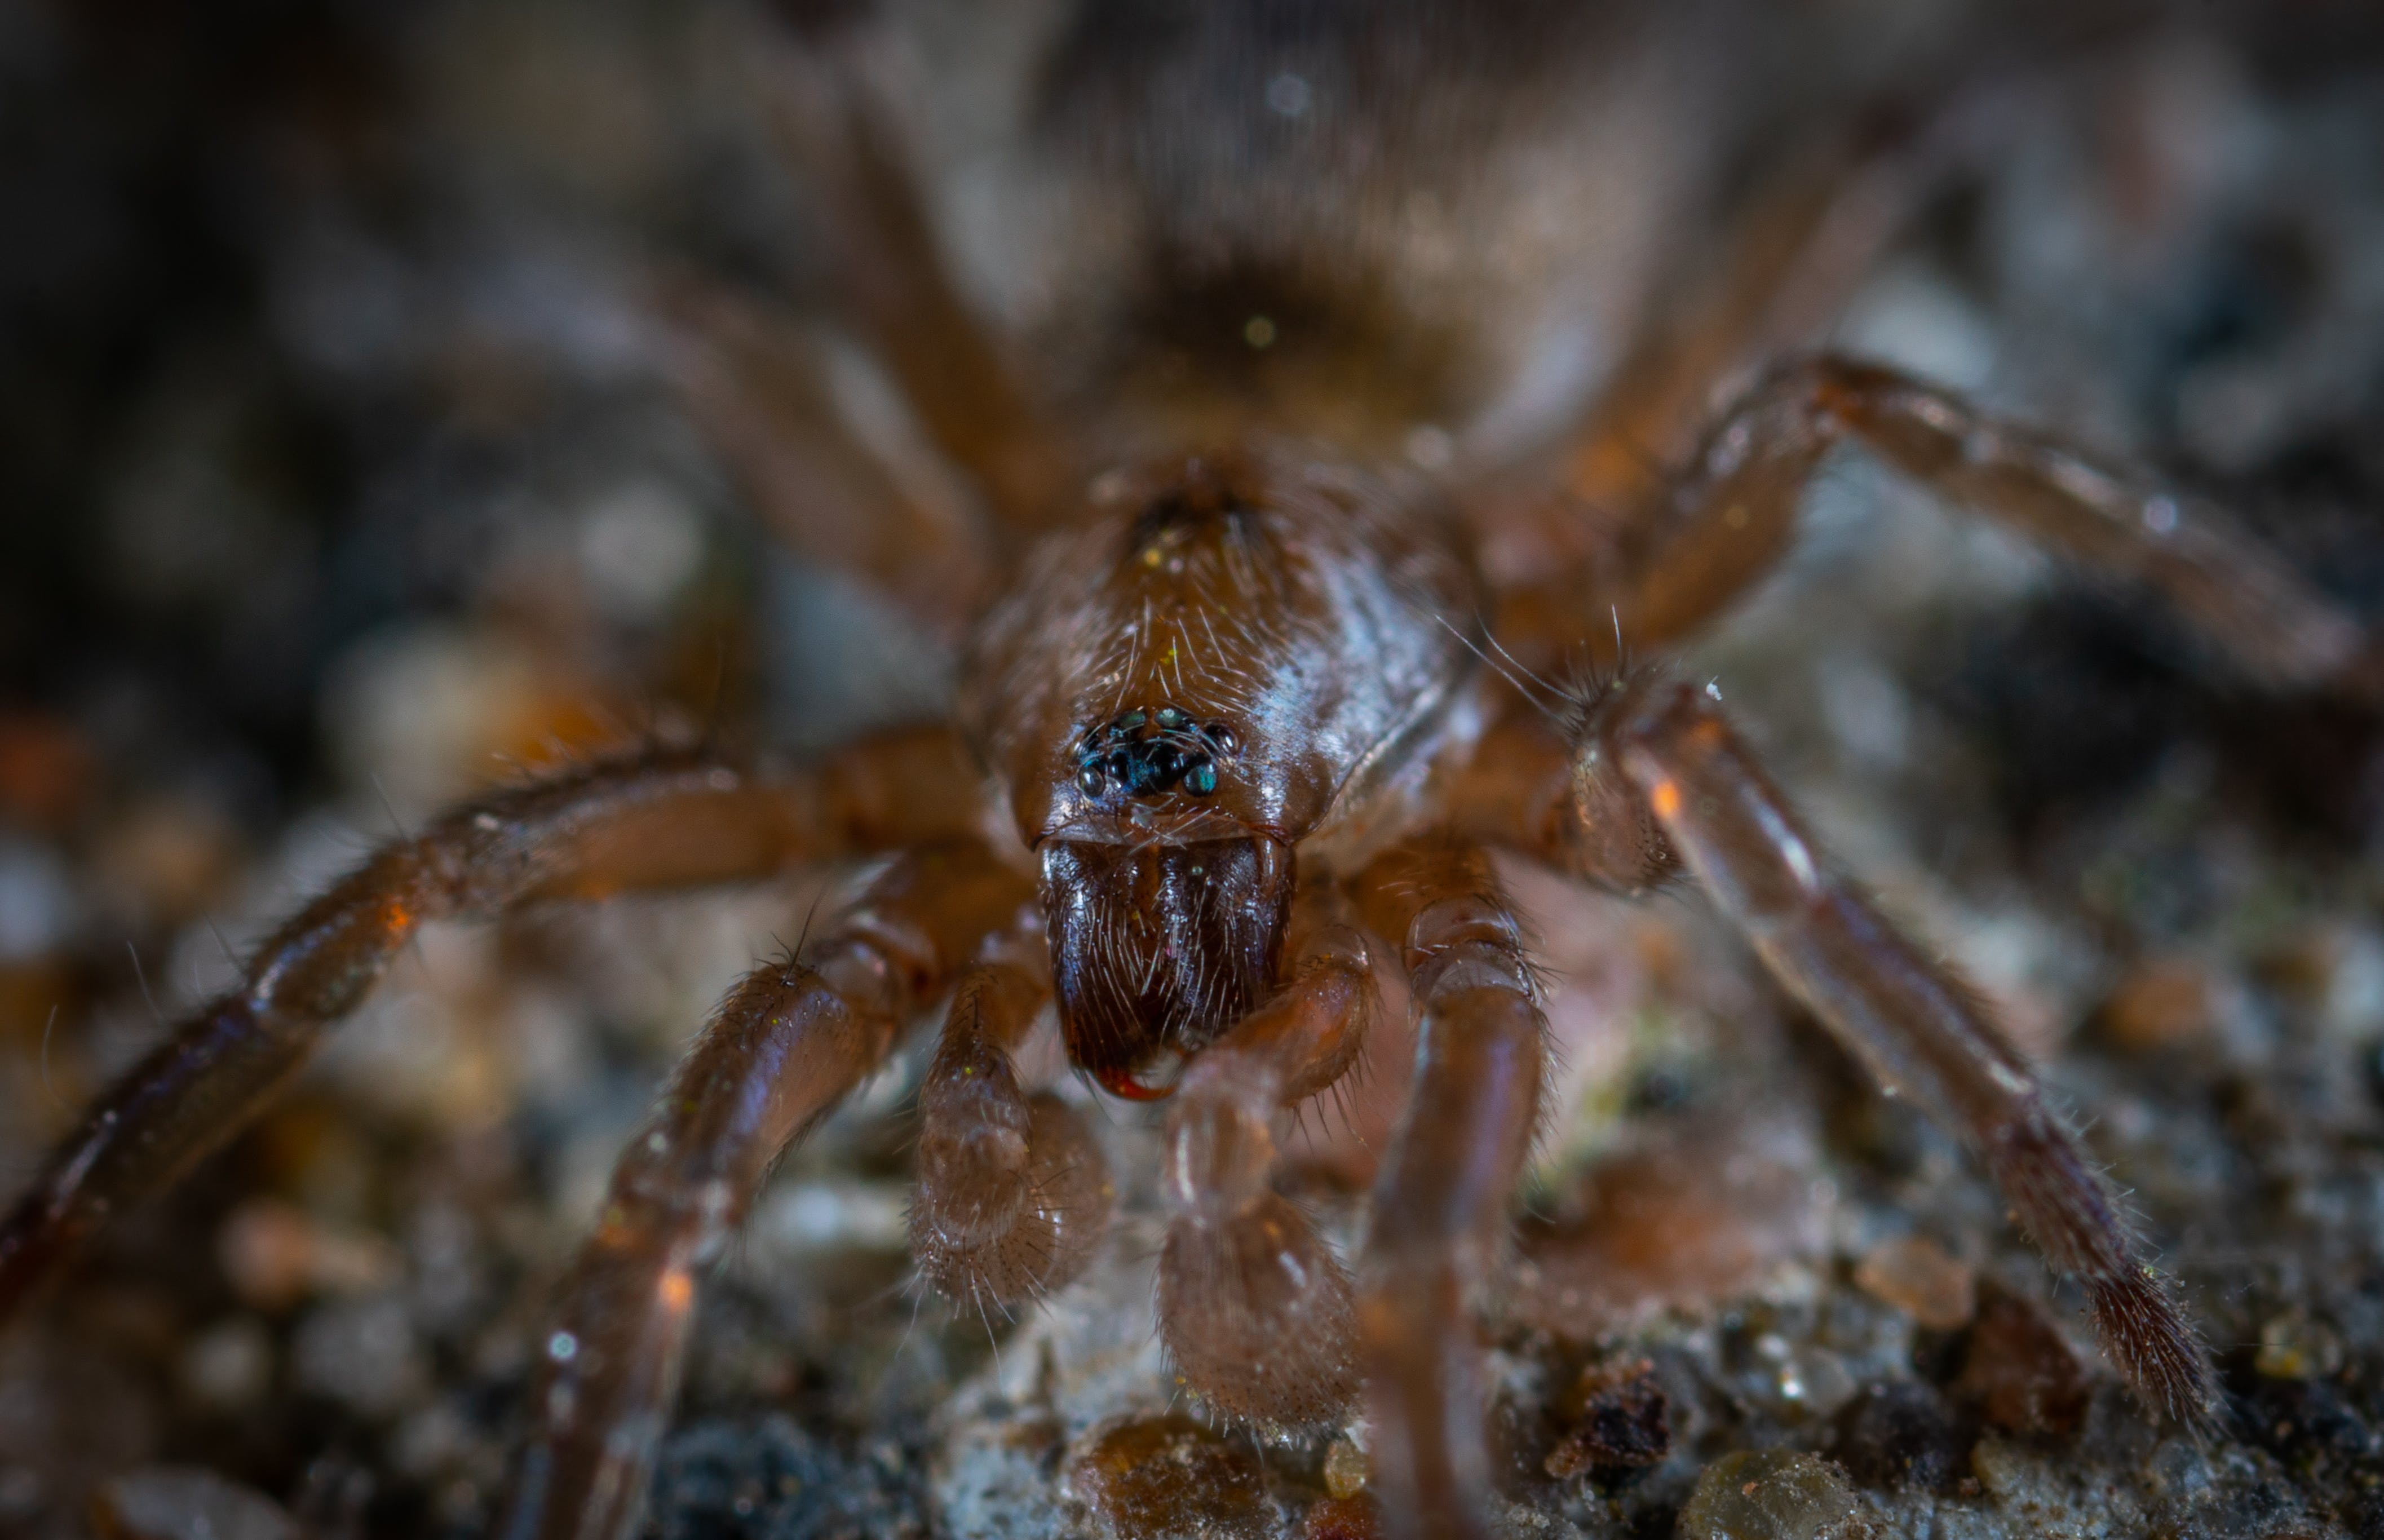 Focus Photo of Brown and Black Spider